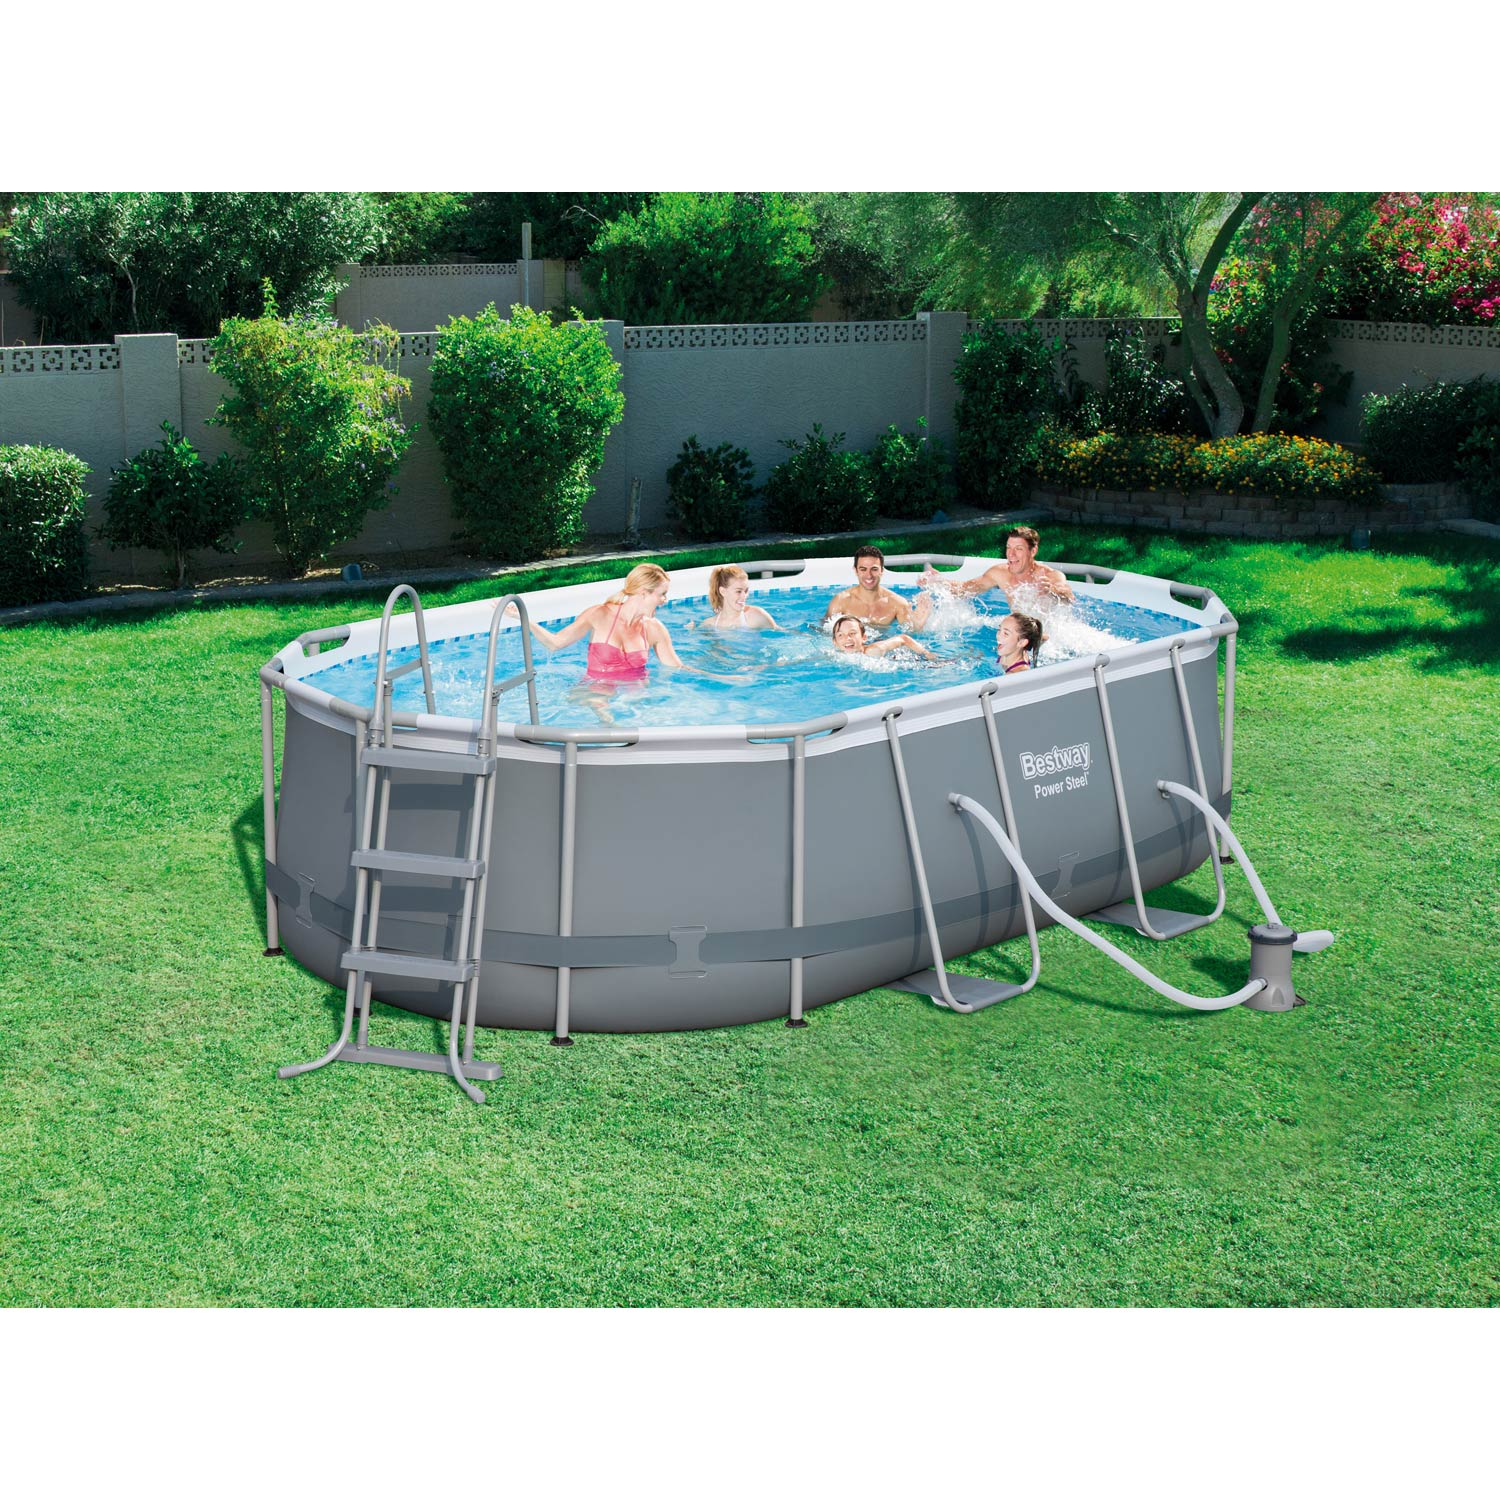 Piscine hors sol autoportante tubulaire bestway l x for Piscine hors sol destockage